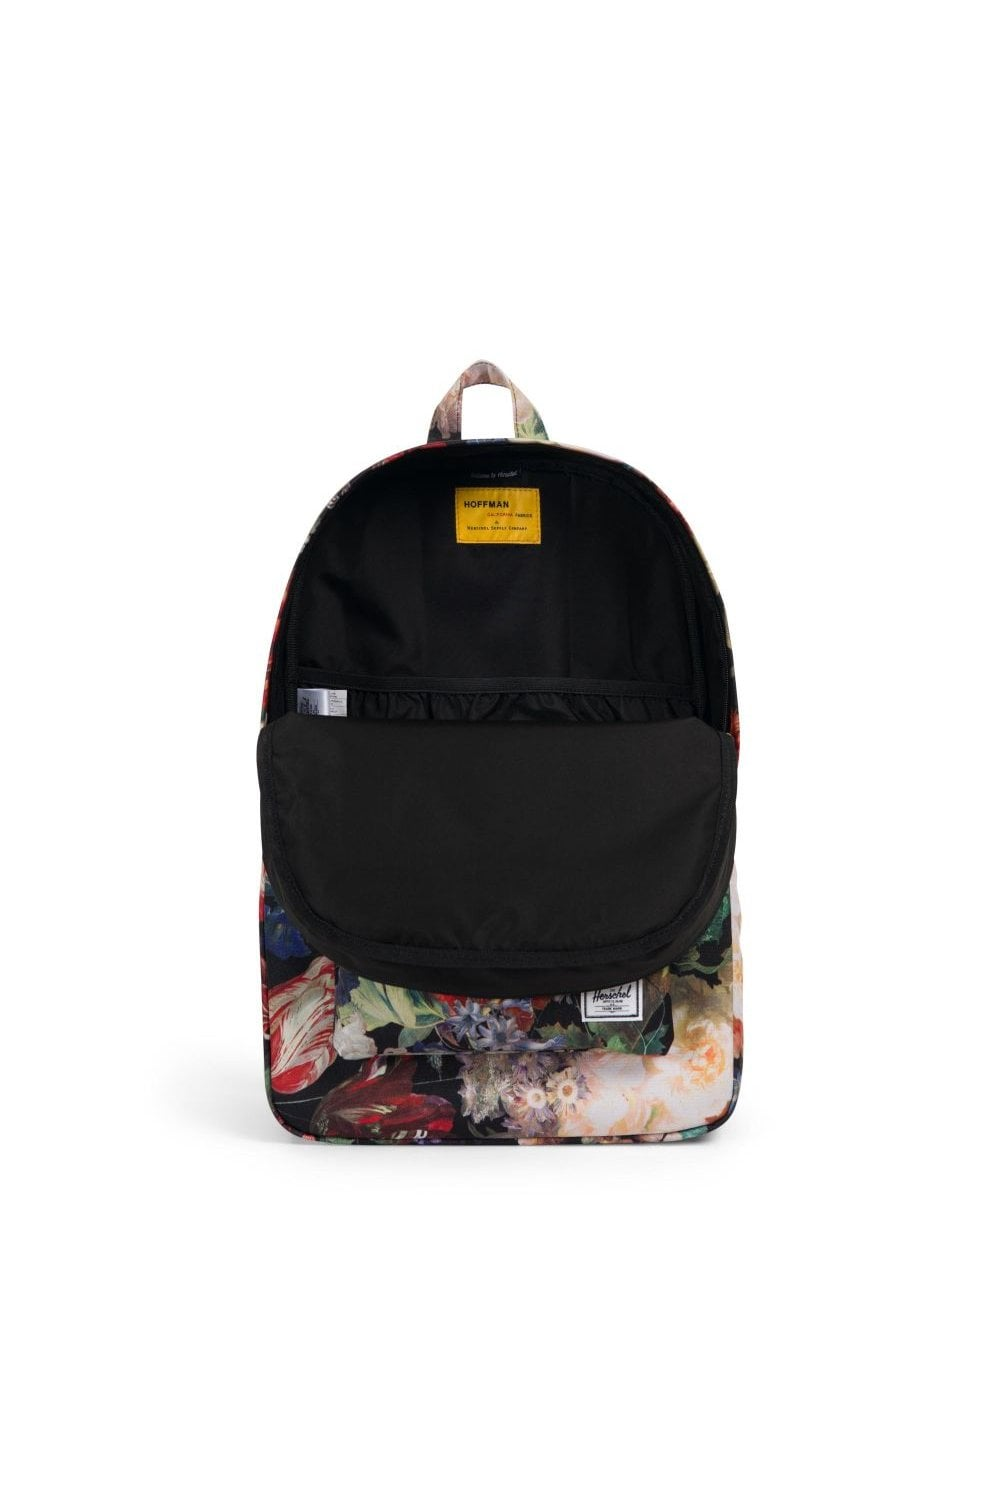 b1b31c545de Herschel Supply Co. Heritage Backpack (Fall Floral - Hoffman ...